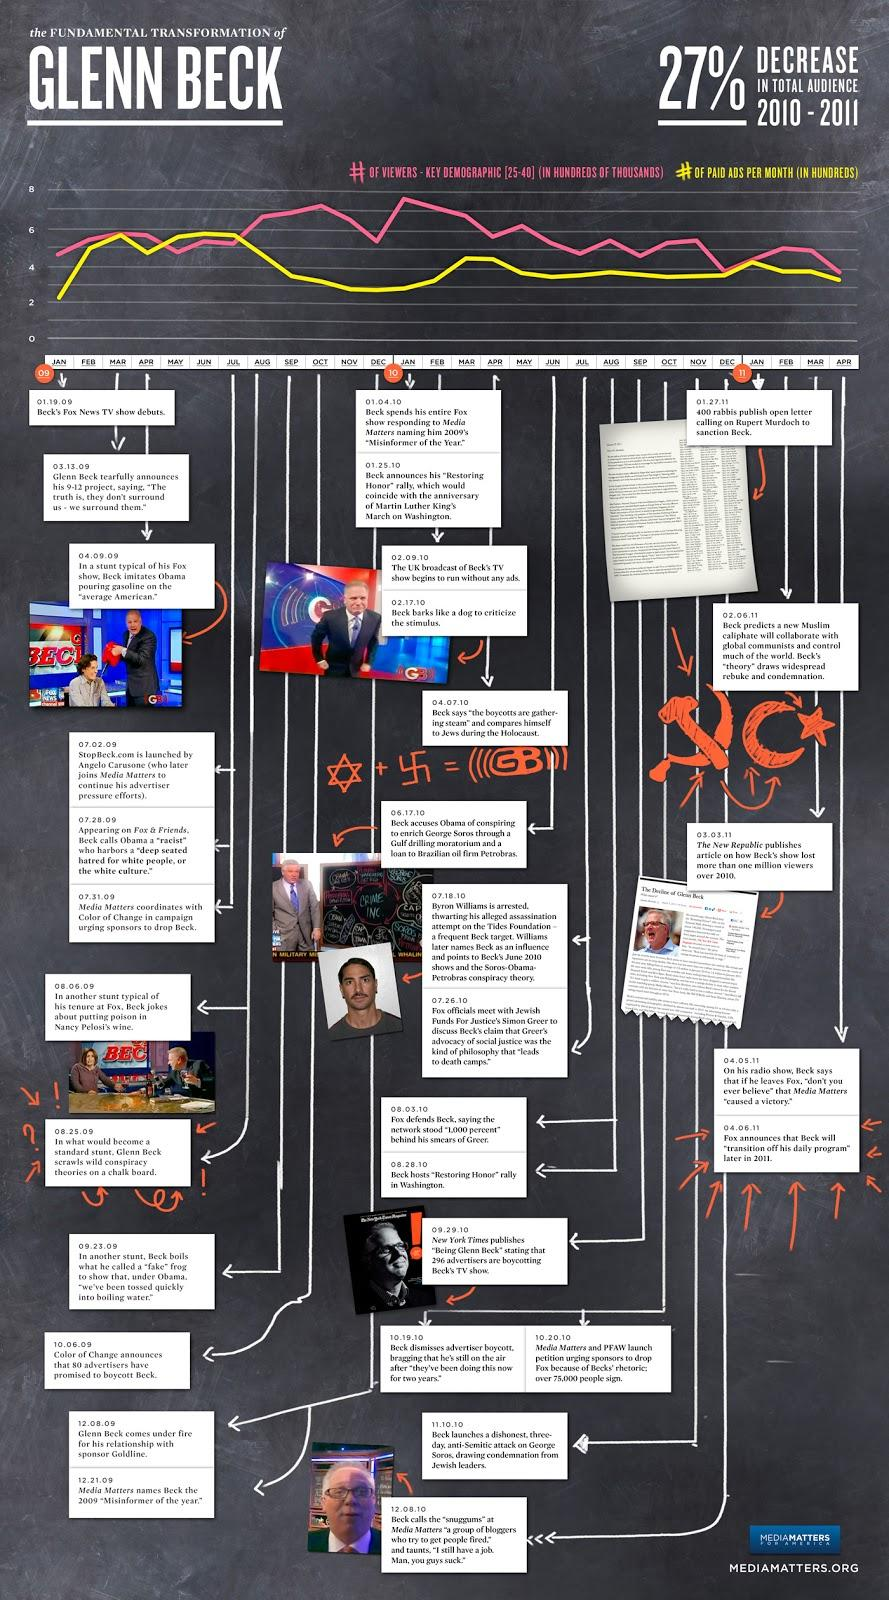 beck_infographic